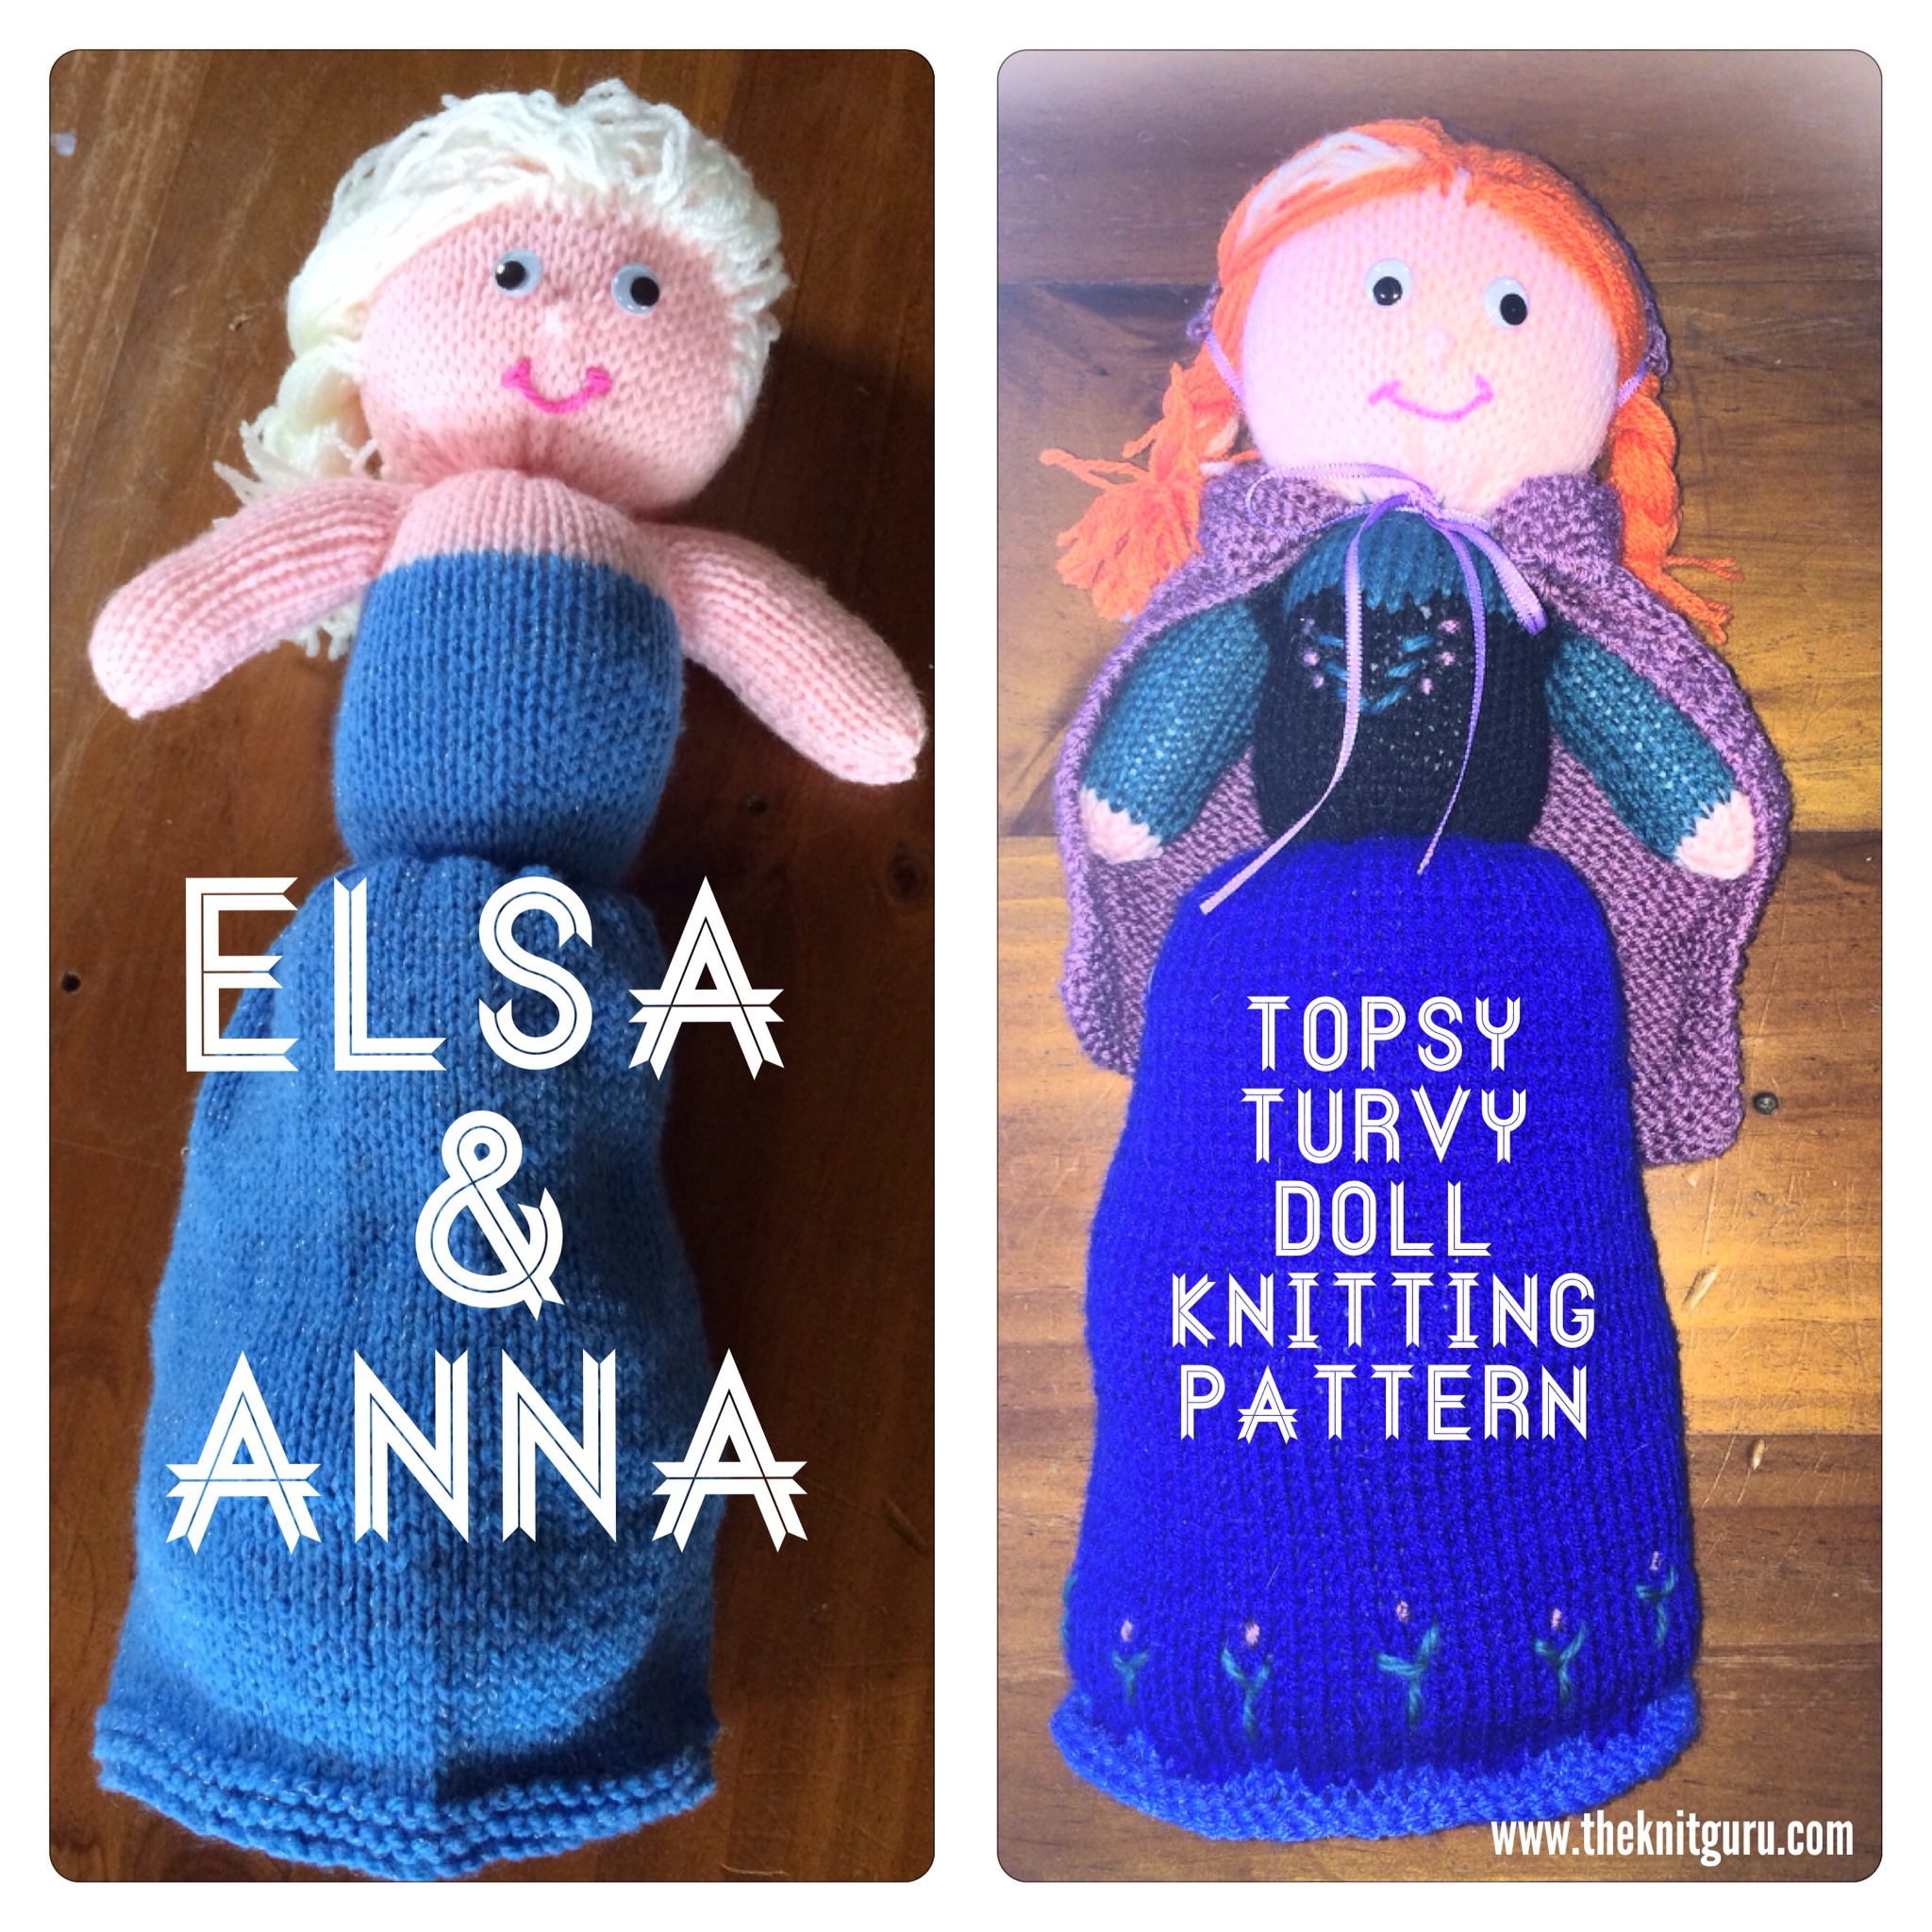 Anna and Elsa from Frozen – Knitting pattern | The Knit Guru